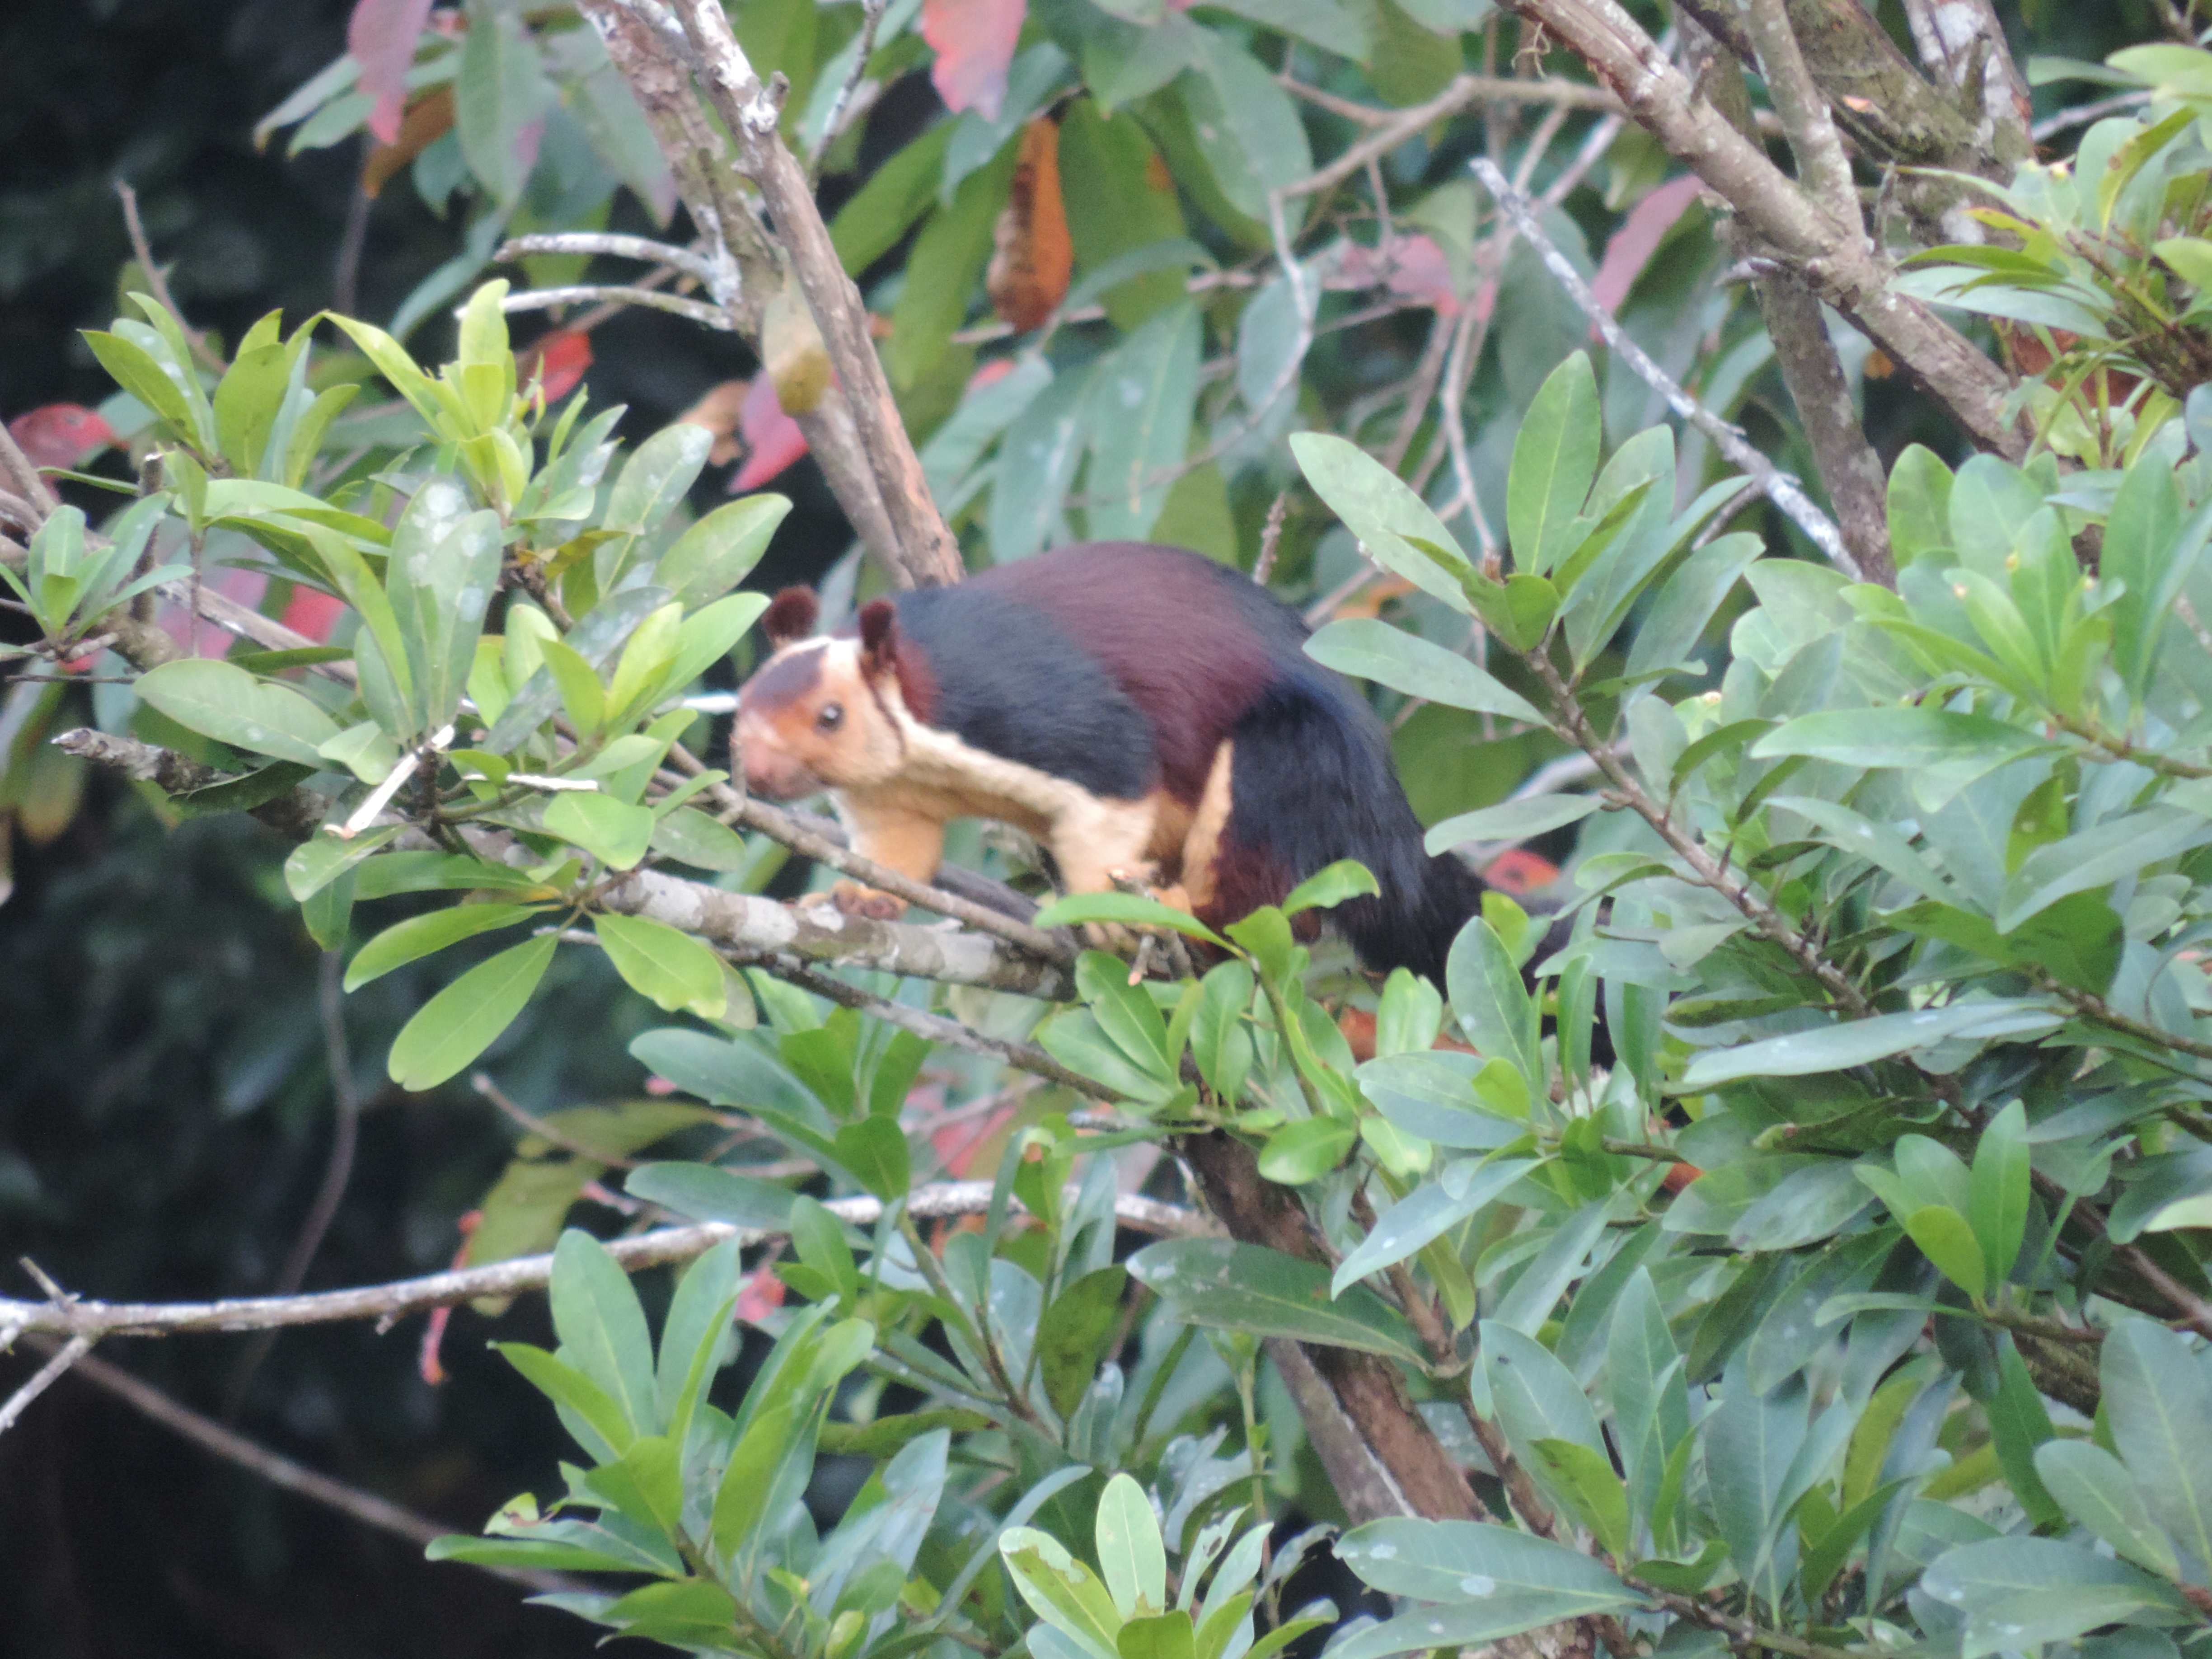 Malabar Giant Squirrel at Vazhachal Bridge, 10 Nov 2013.